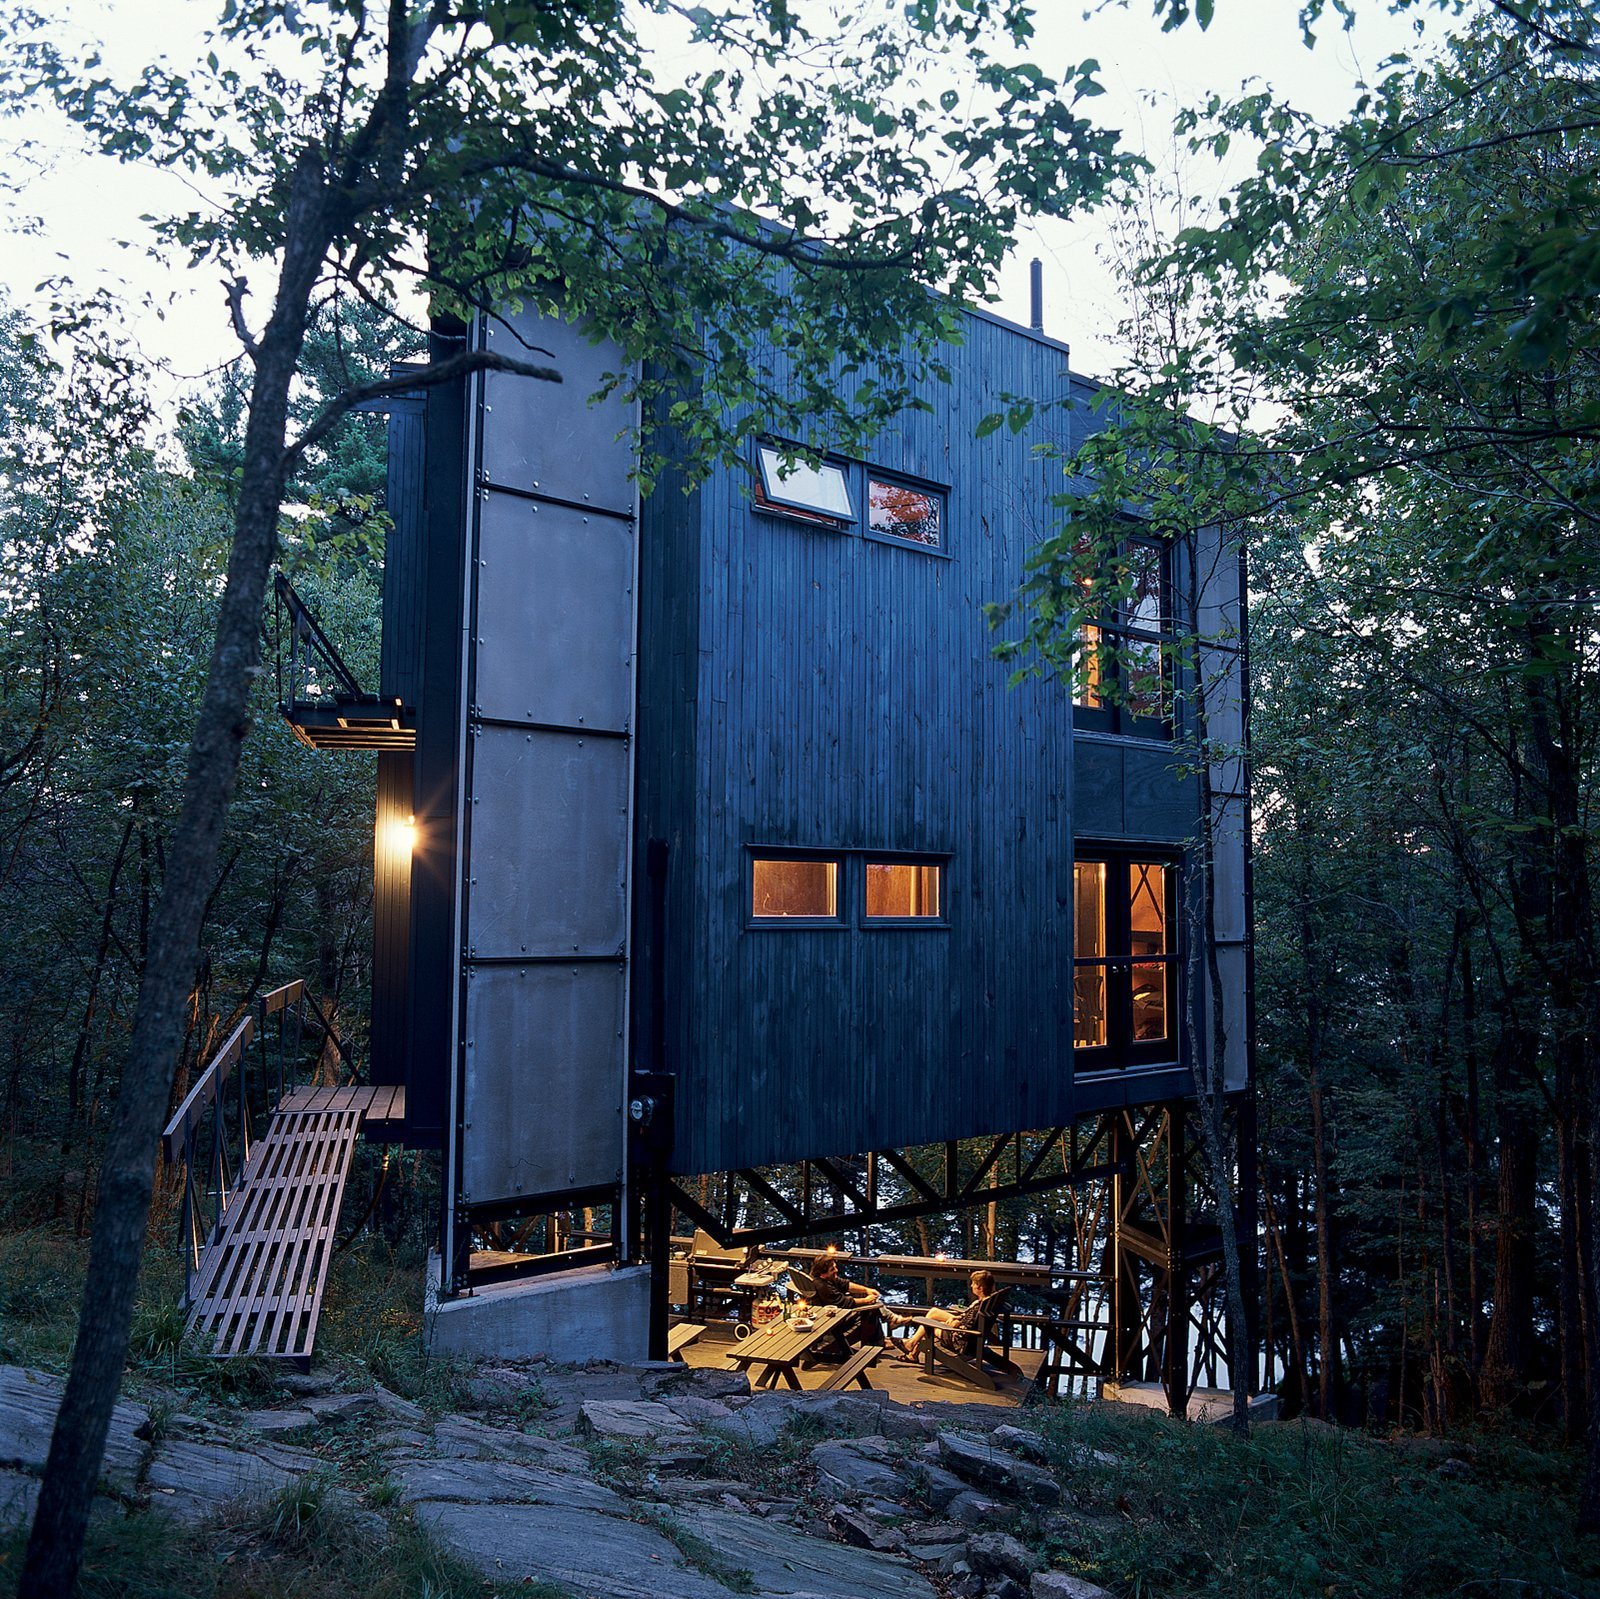 Playfully christened La Tour des Bébelles, the three-story, steel-framed tower has shown itself to be the ideal summer retreat: secluded, perfectly positioned near Ontario's Otter Lake, and encouraging of its inhabitants to spend time outdoors.  Cabins & Hideouts from A Modern Dark Tower